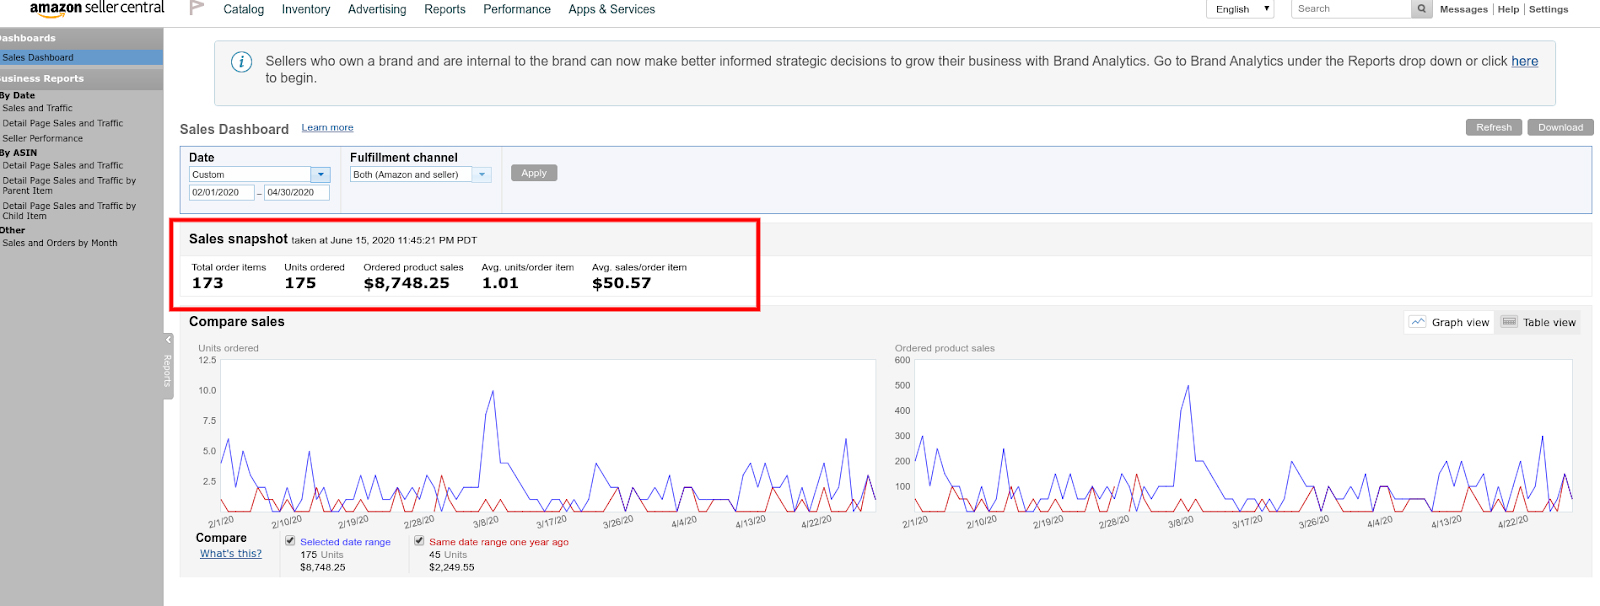 amazon seller case studies for increasing amazon sales, SEO and PPC sales